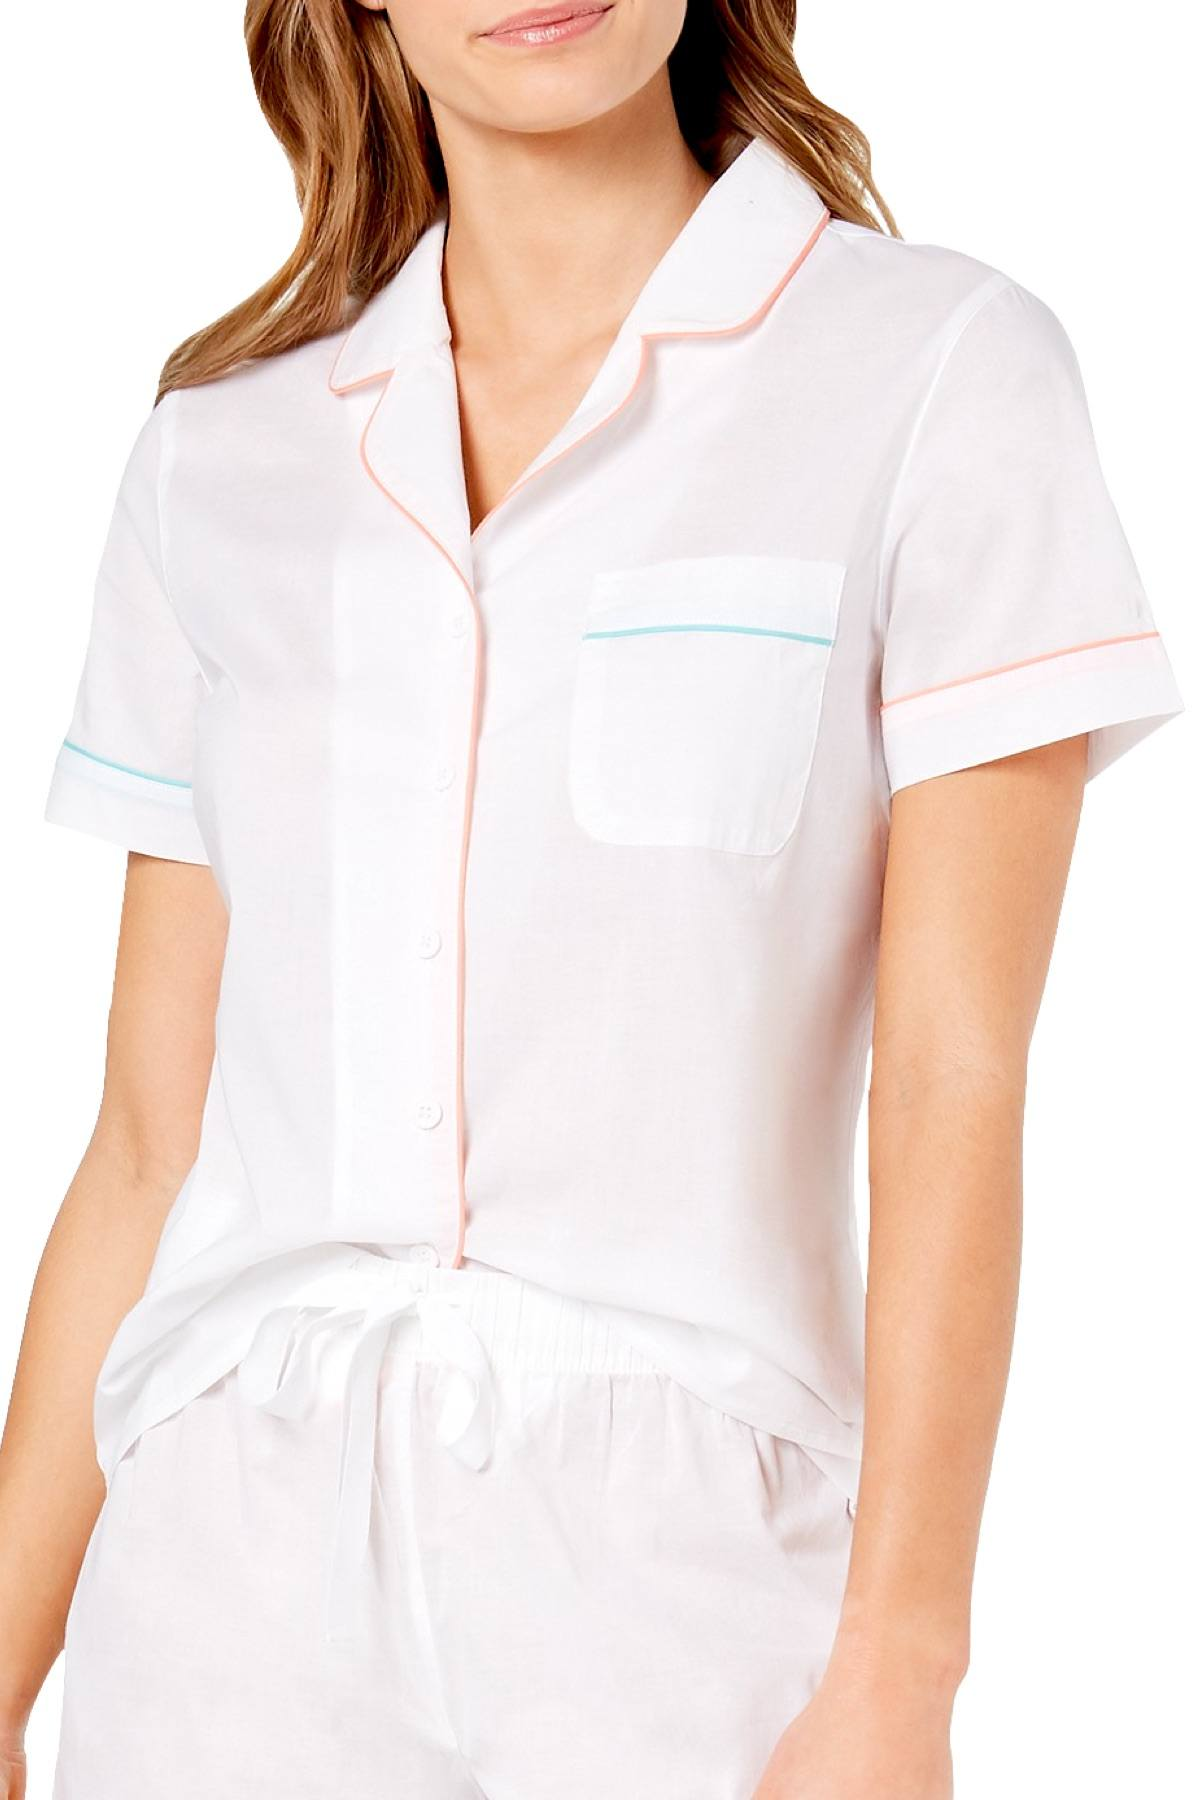 Charter Club Intimates Bright White Notch Collar Woven Cotton PJ Top